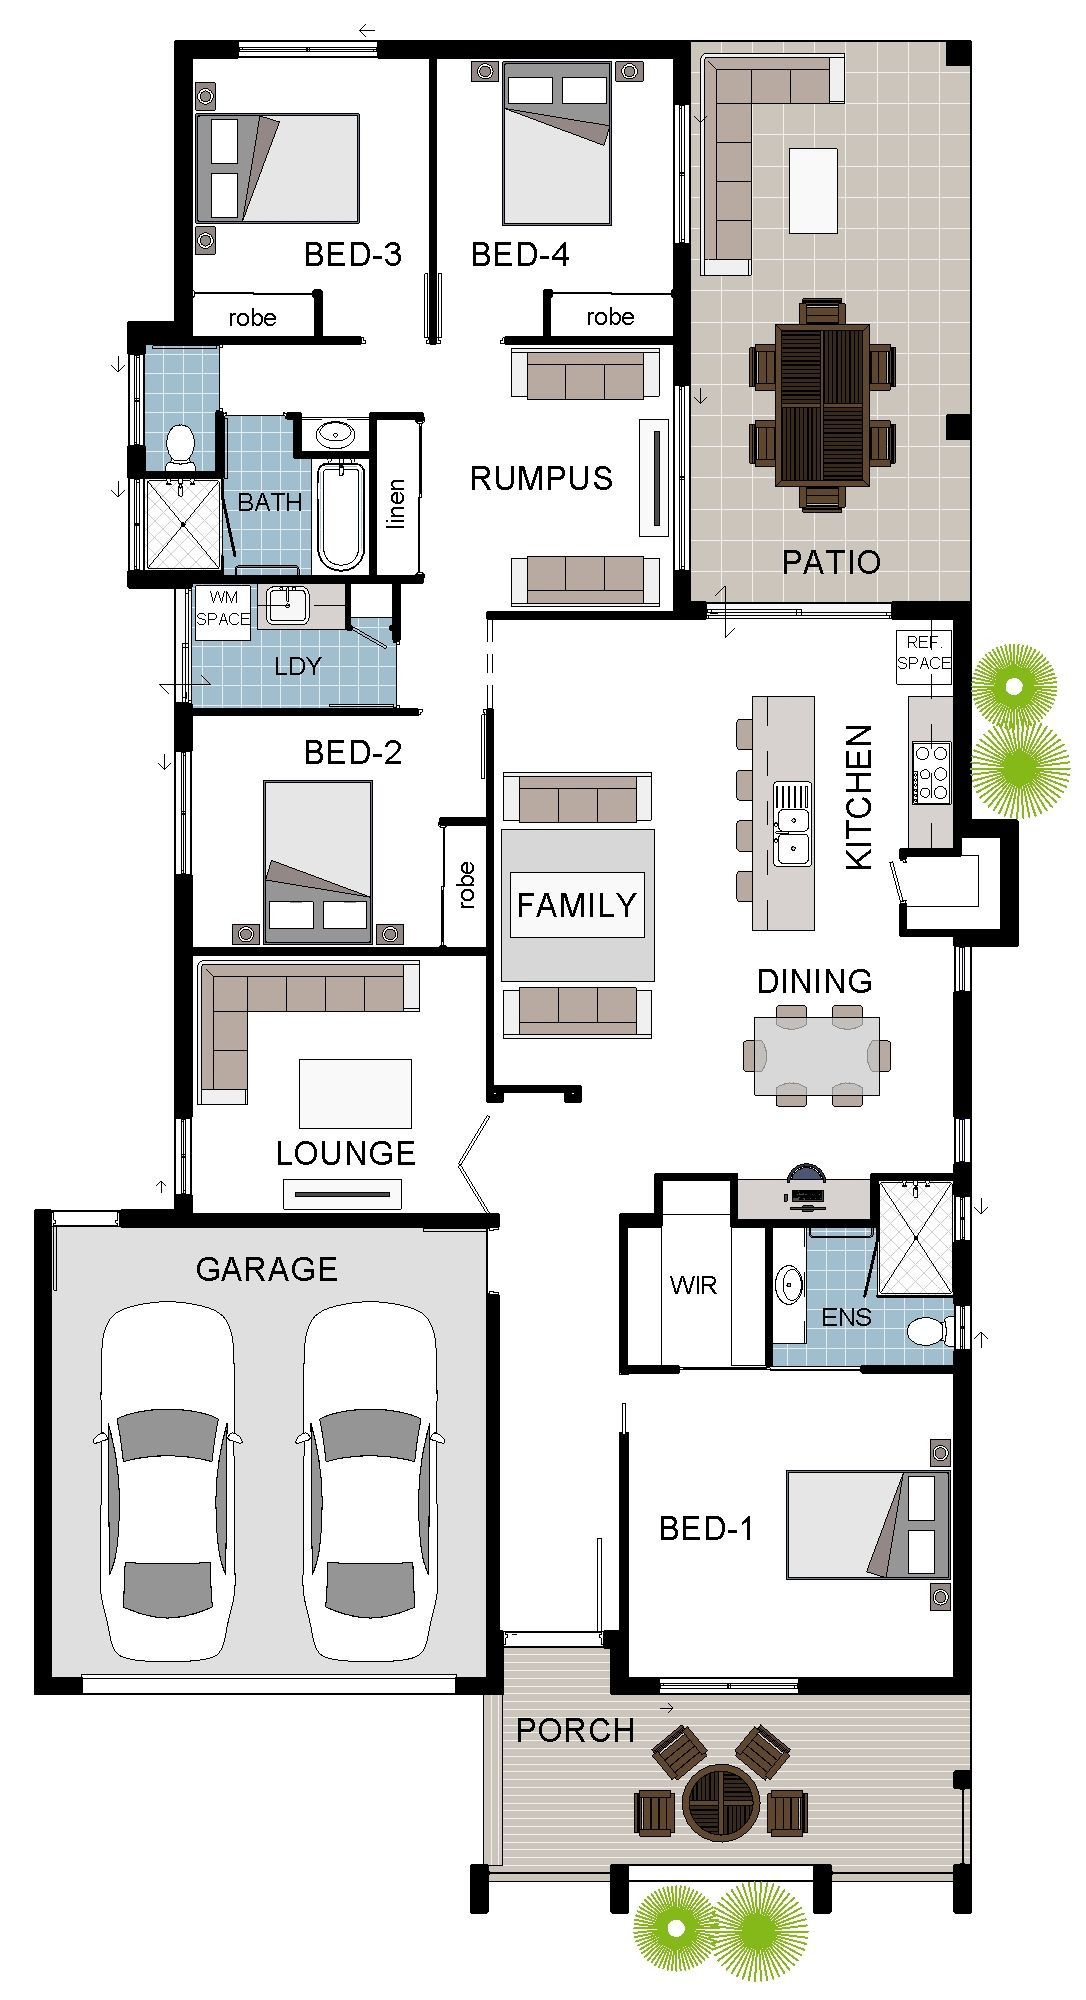 Floorplan Design Single Storey Display Home Design In 2020 House Plans Australia Floor Plan Design Floor Plans